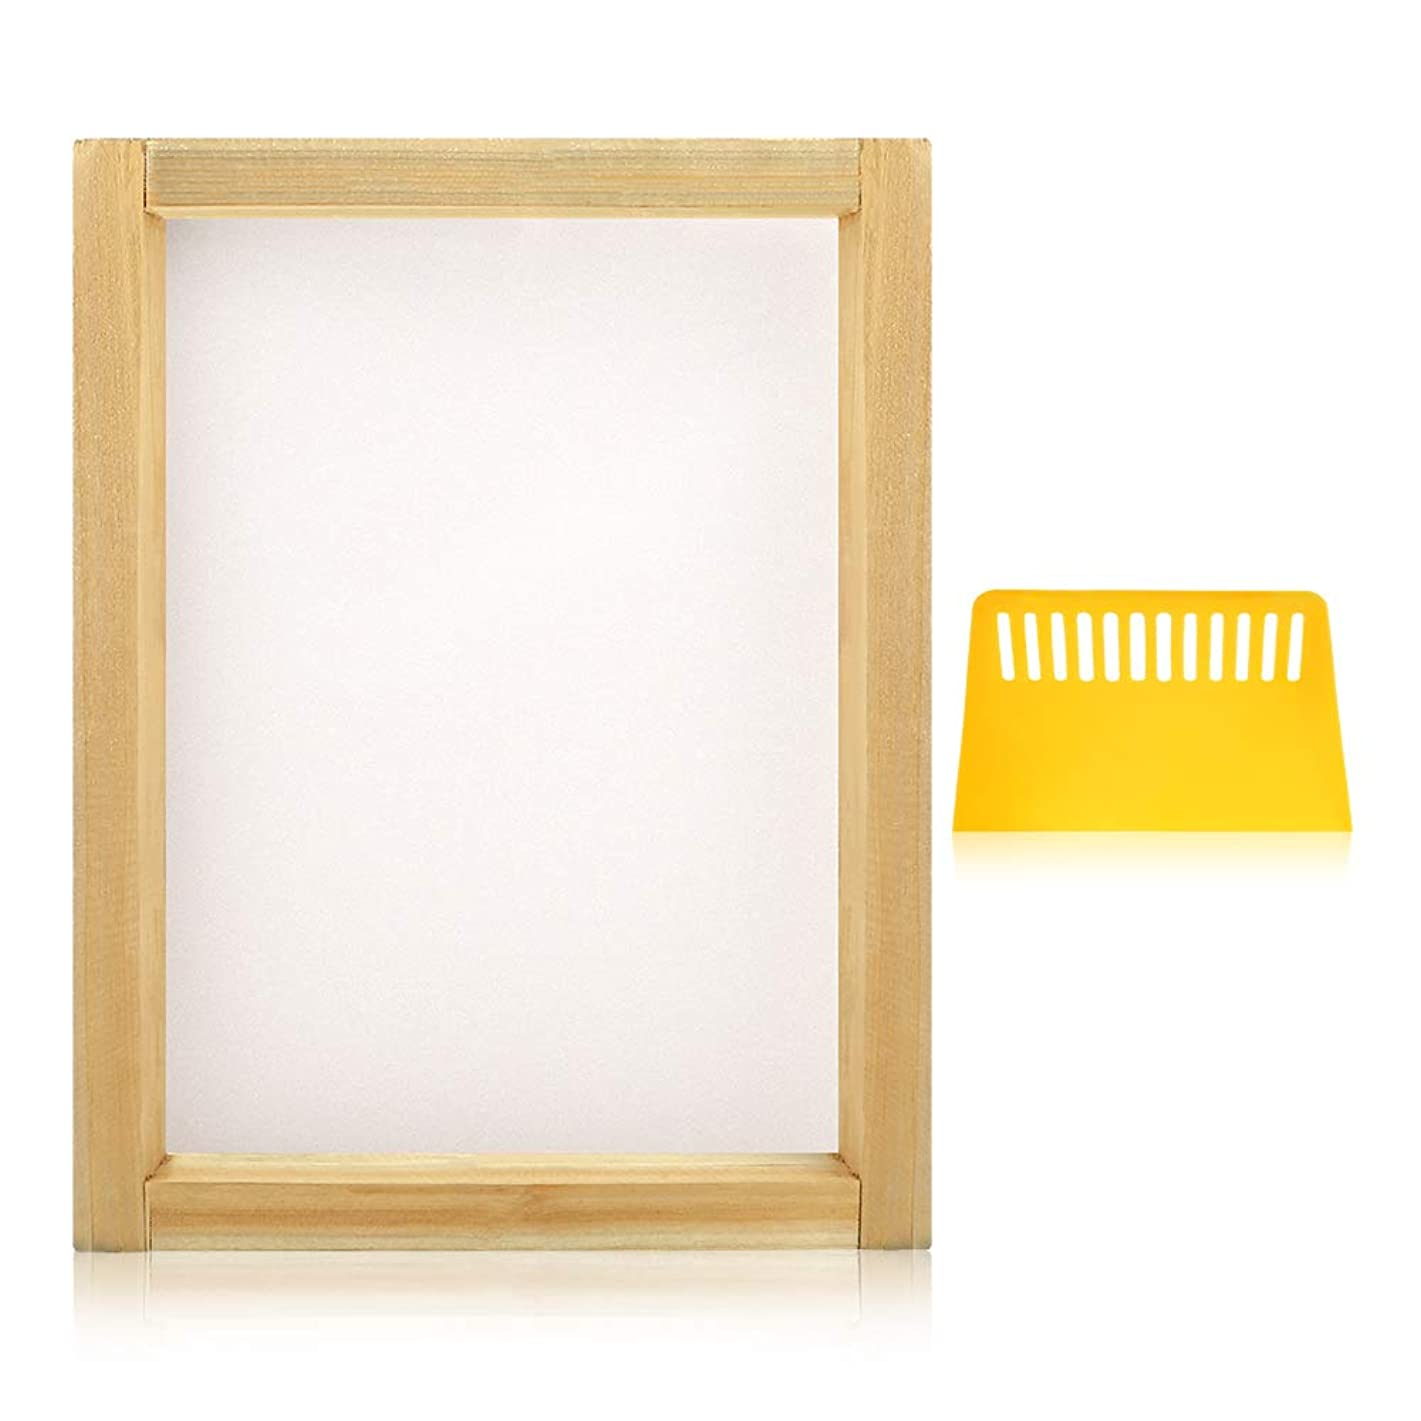 Caydo 1 Piece 8 x 10 Inch Wood Silk Screen Printing Frames with 110 White Mesh and 1 Piece Plastic Scraper